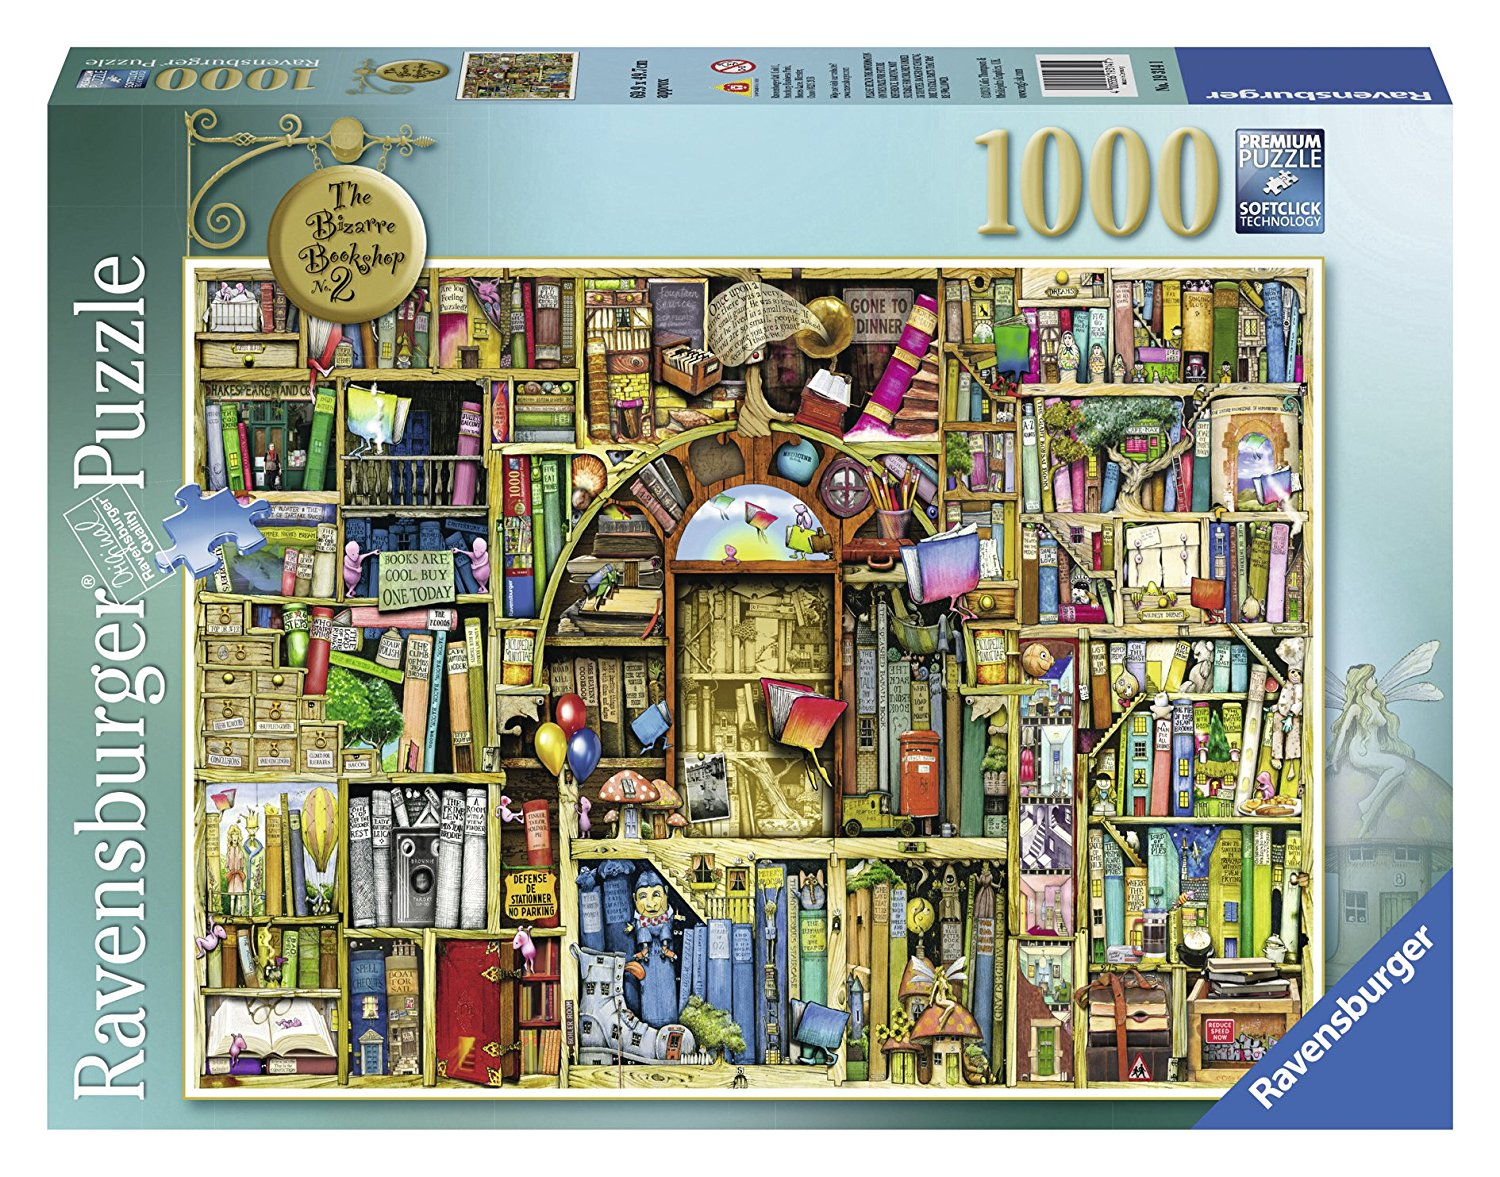 Colin Thompson, The Bizarre Bookshop 2, 1000pc